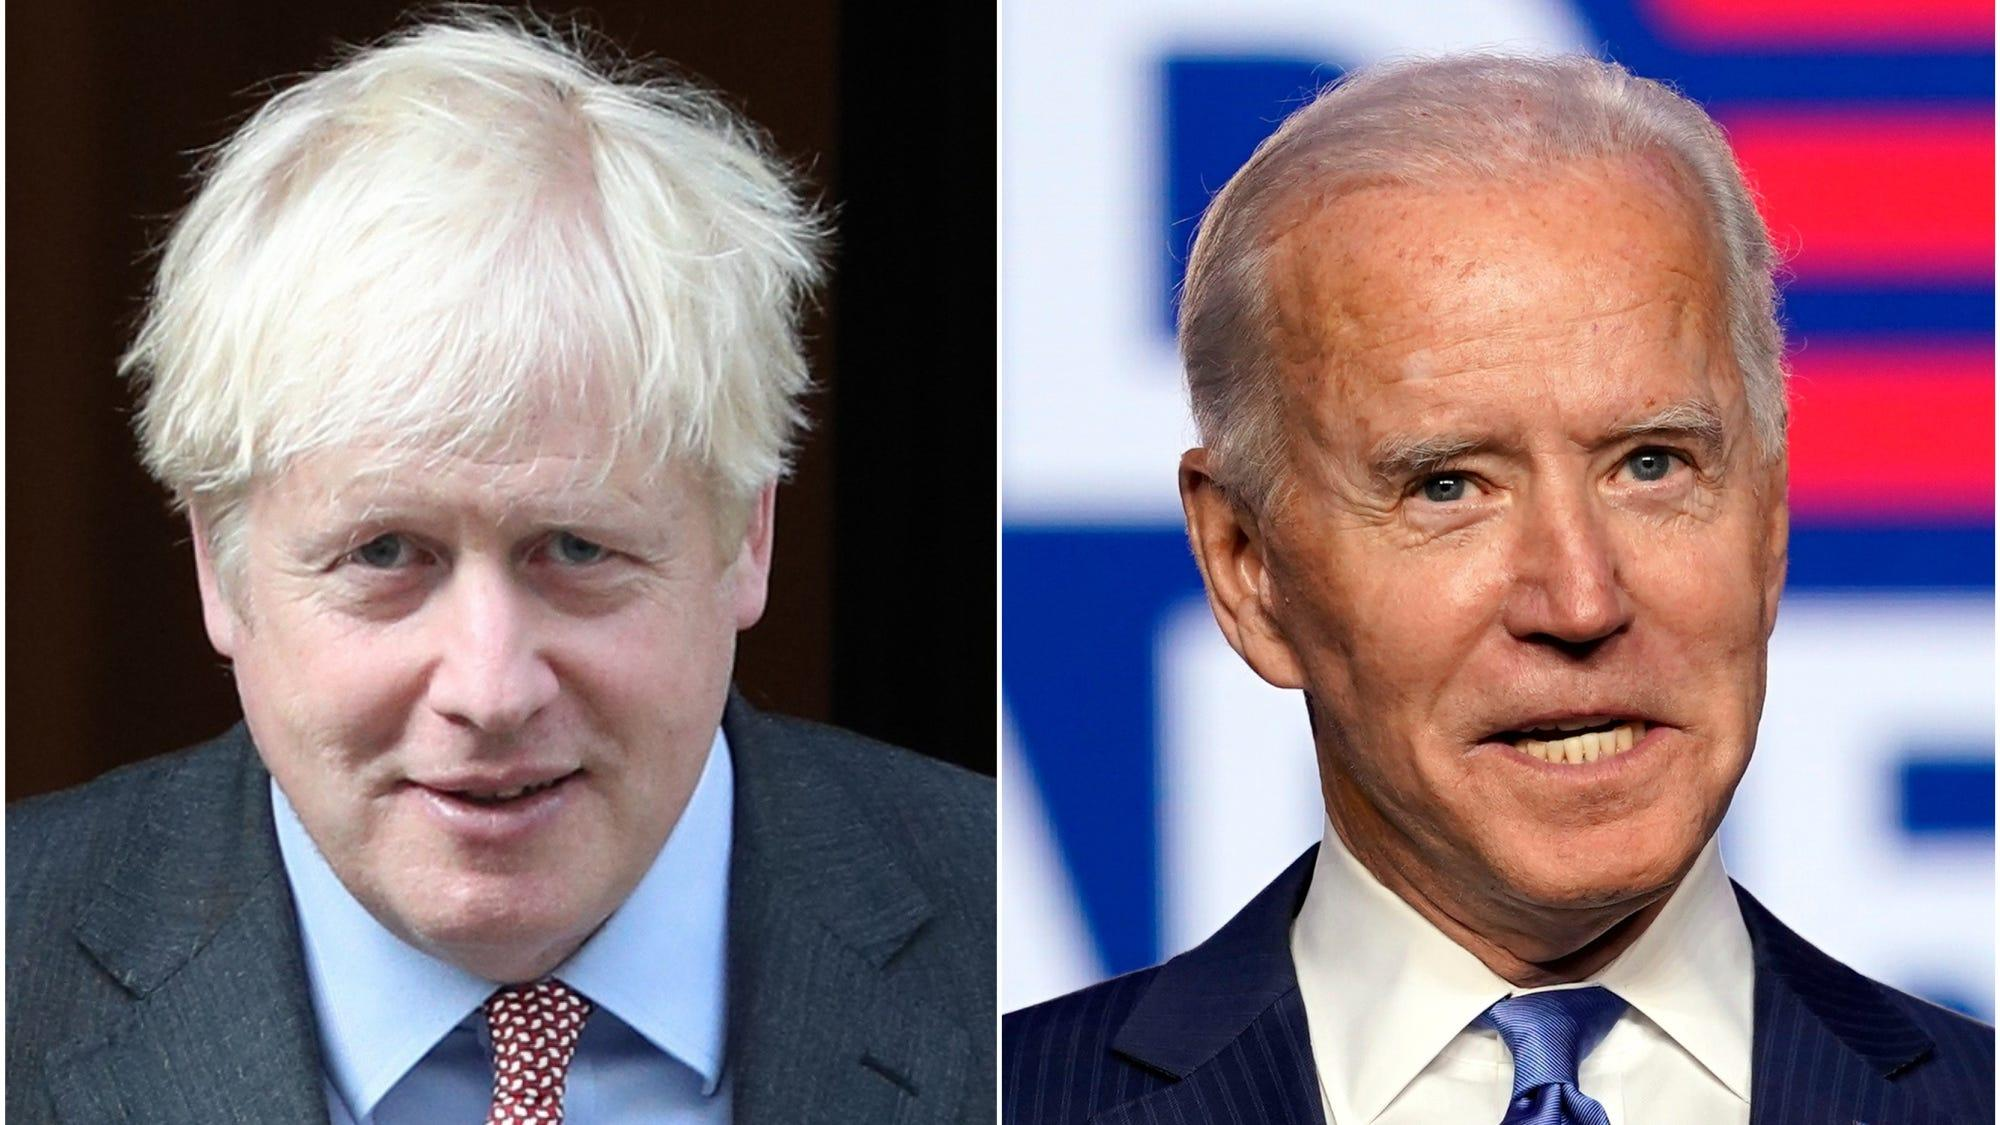 PM congratulates Biden on election as president of UK's 'most important ally'